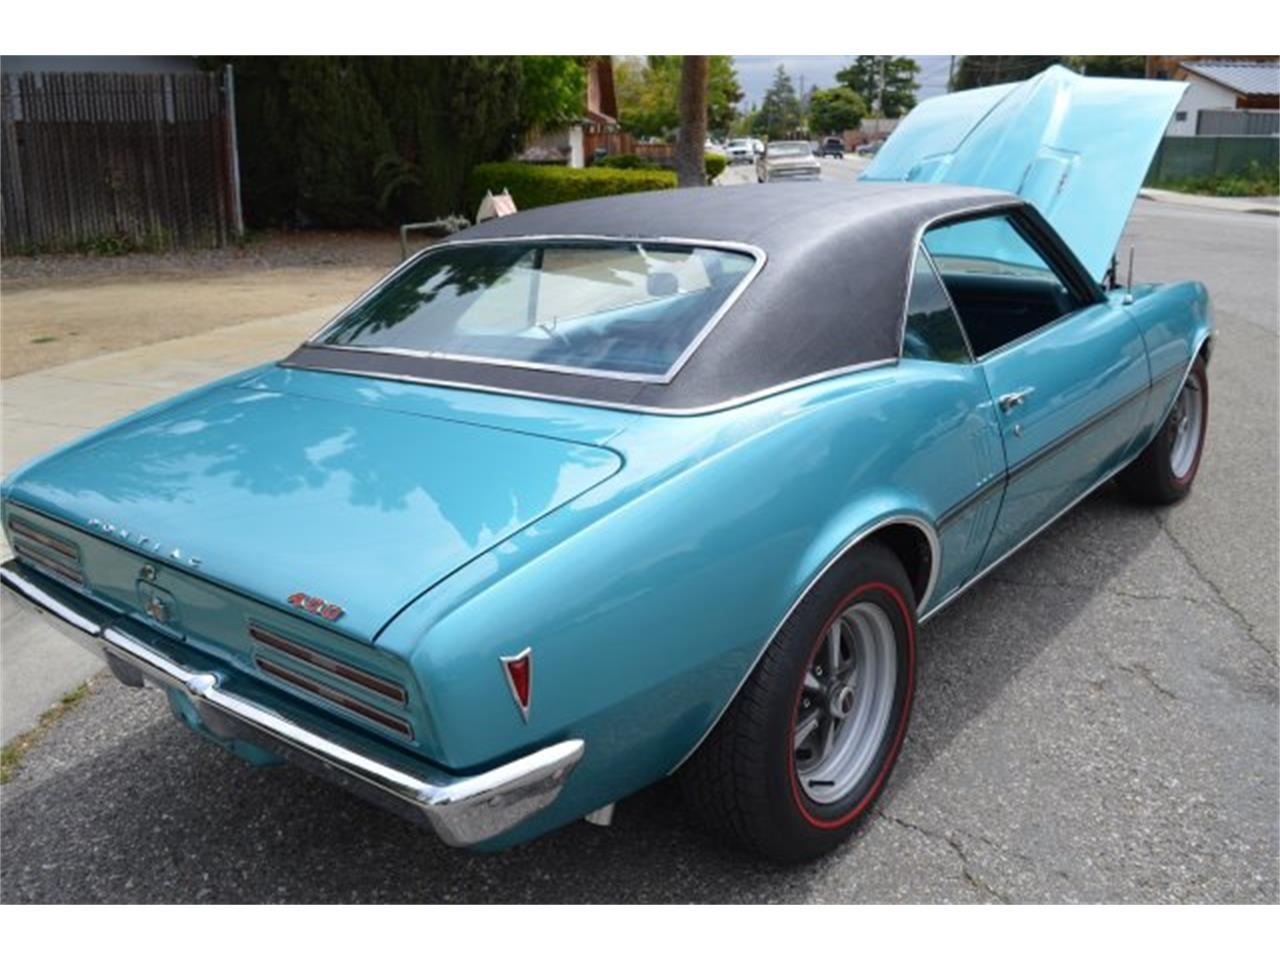 Large Picture of Classic '68 Pontiac Firebird located in San Jose California Auction Vehicle - KV9Z